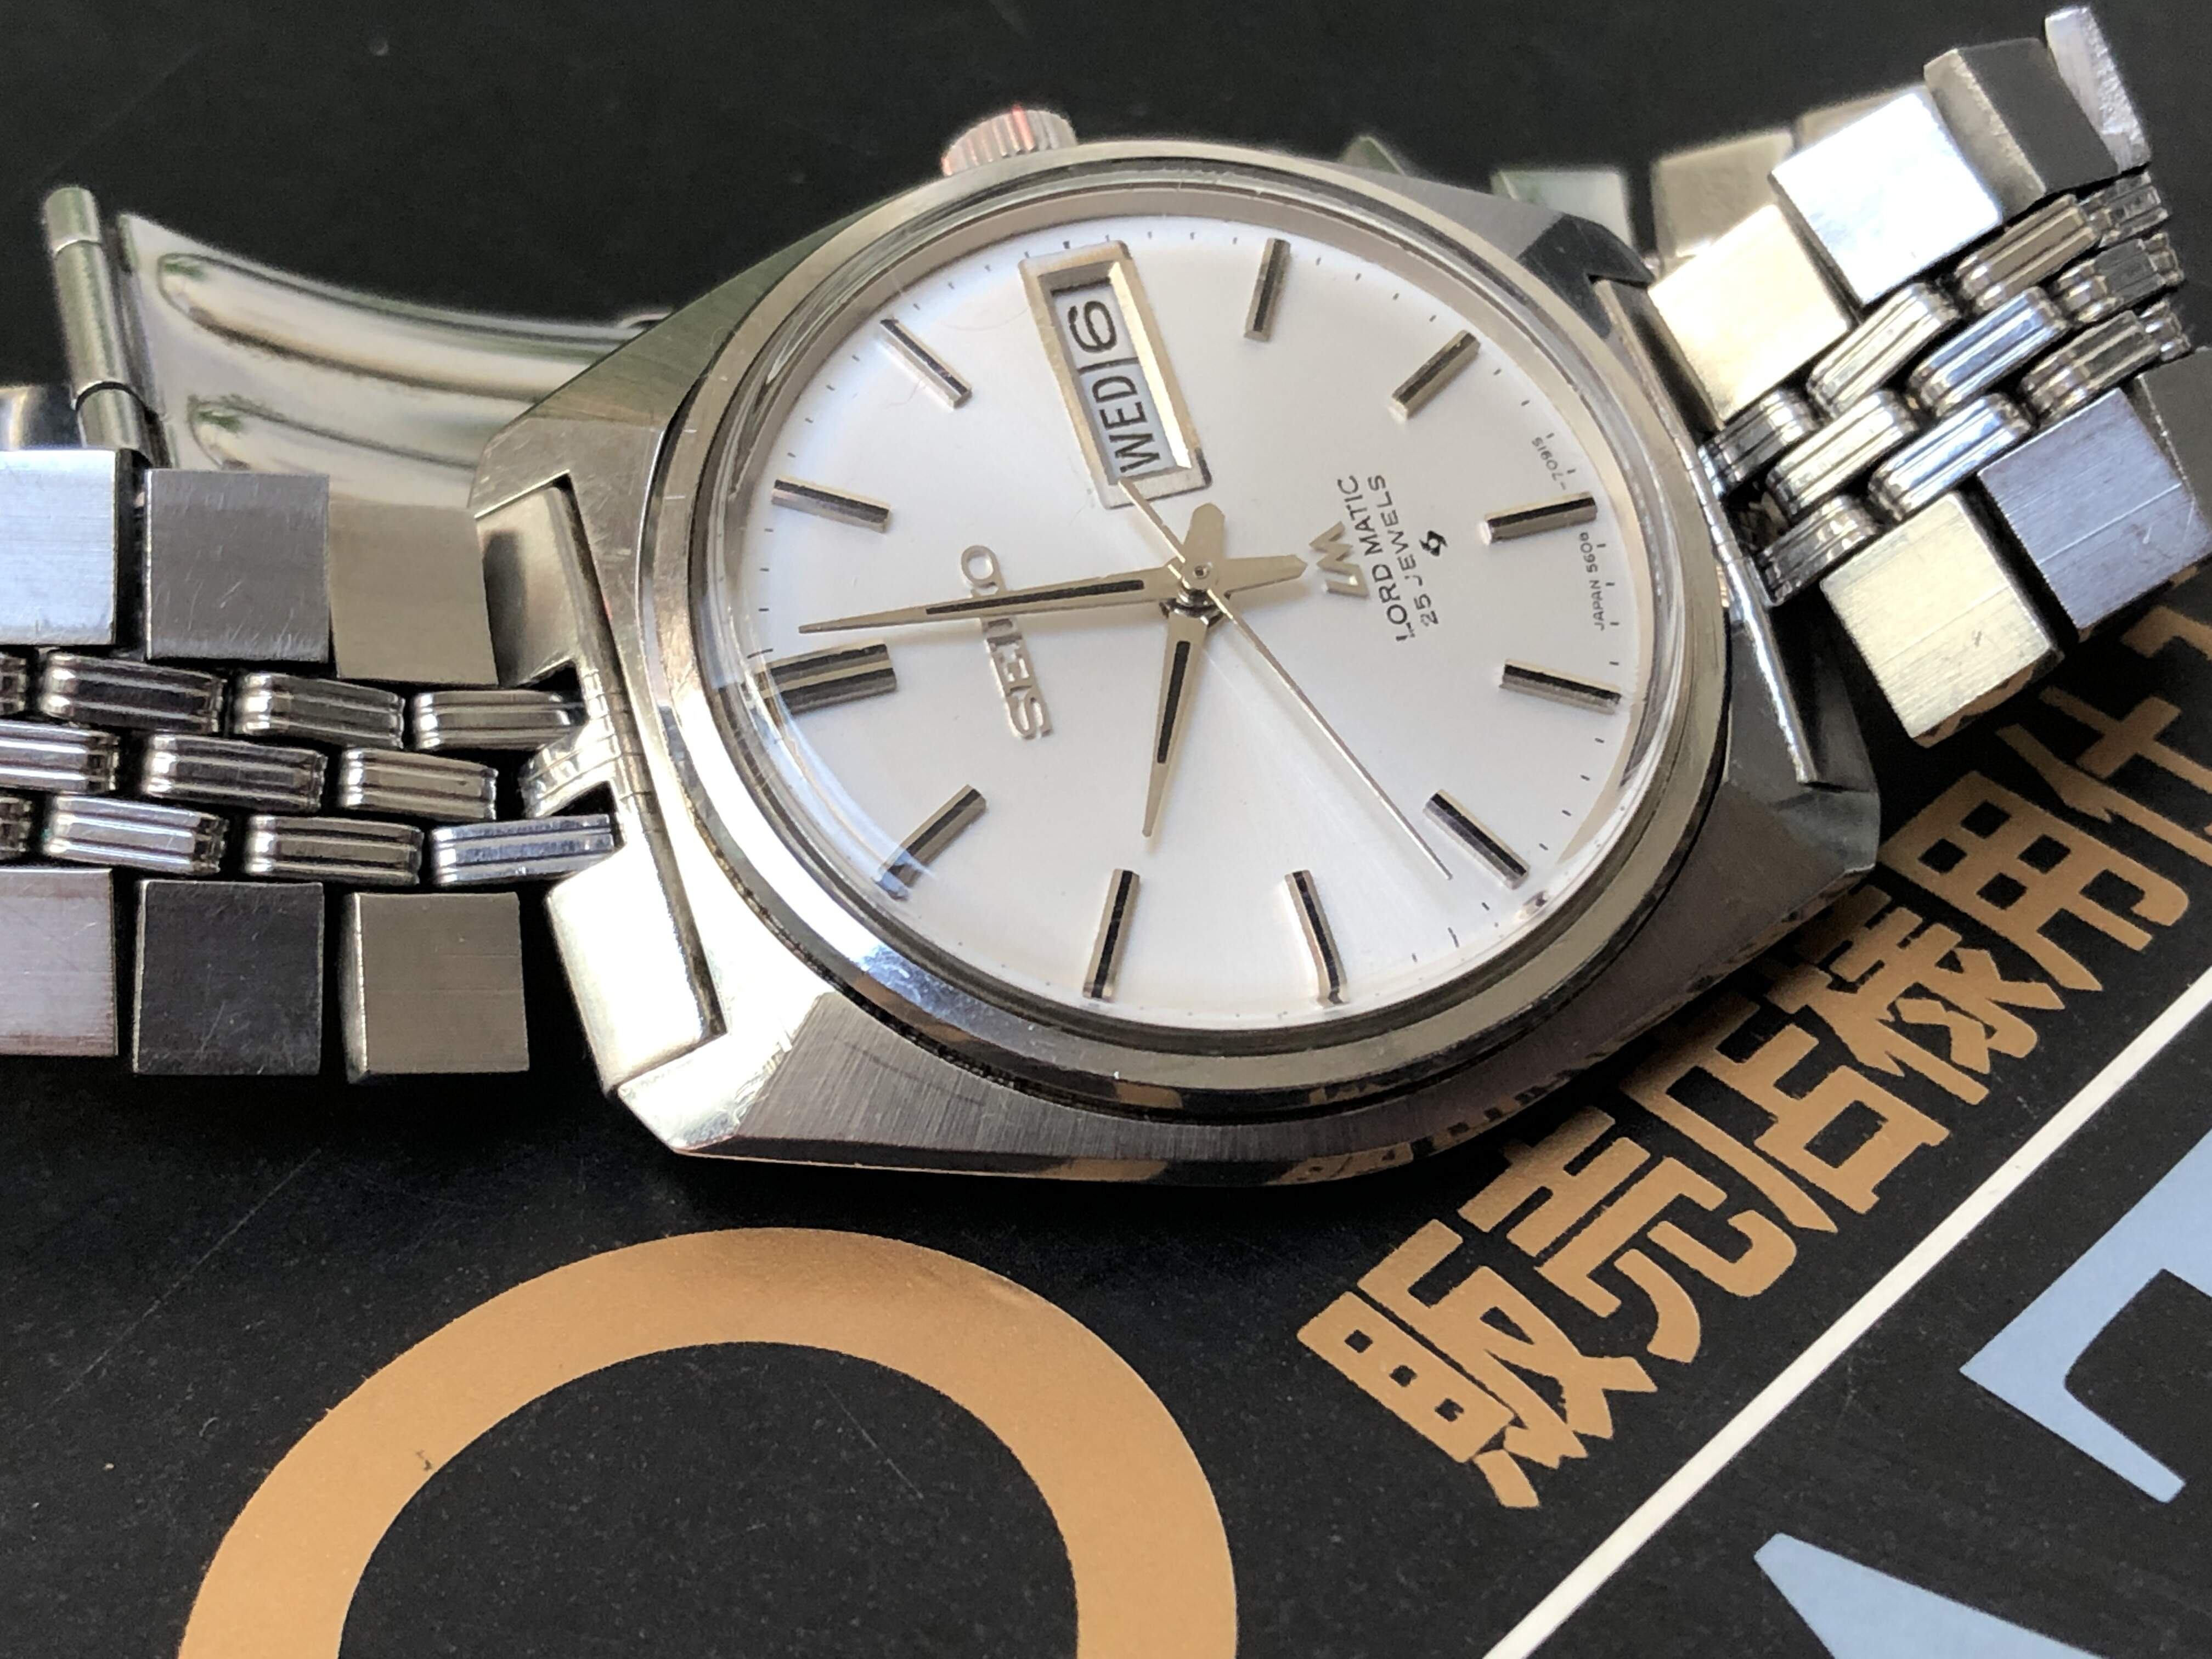 Seiko Lord-Matic 5606-7000